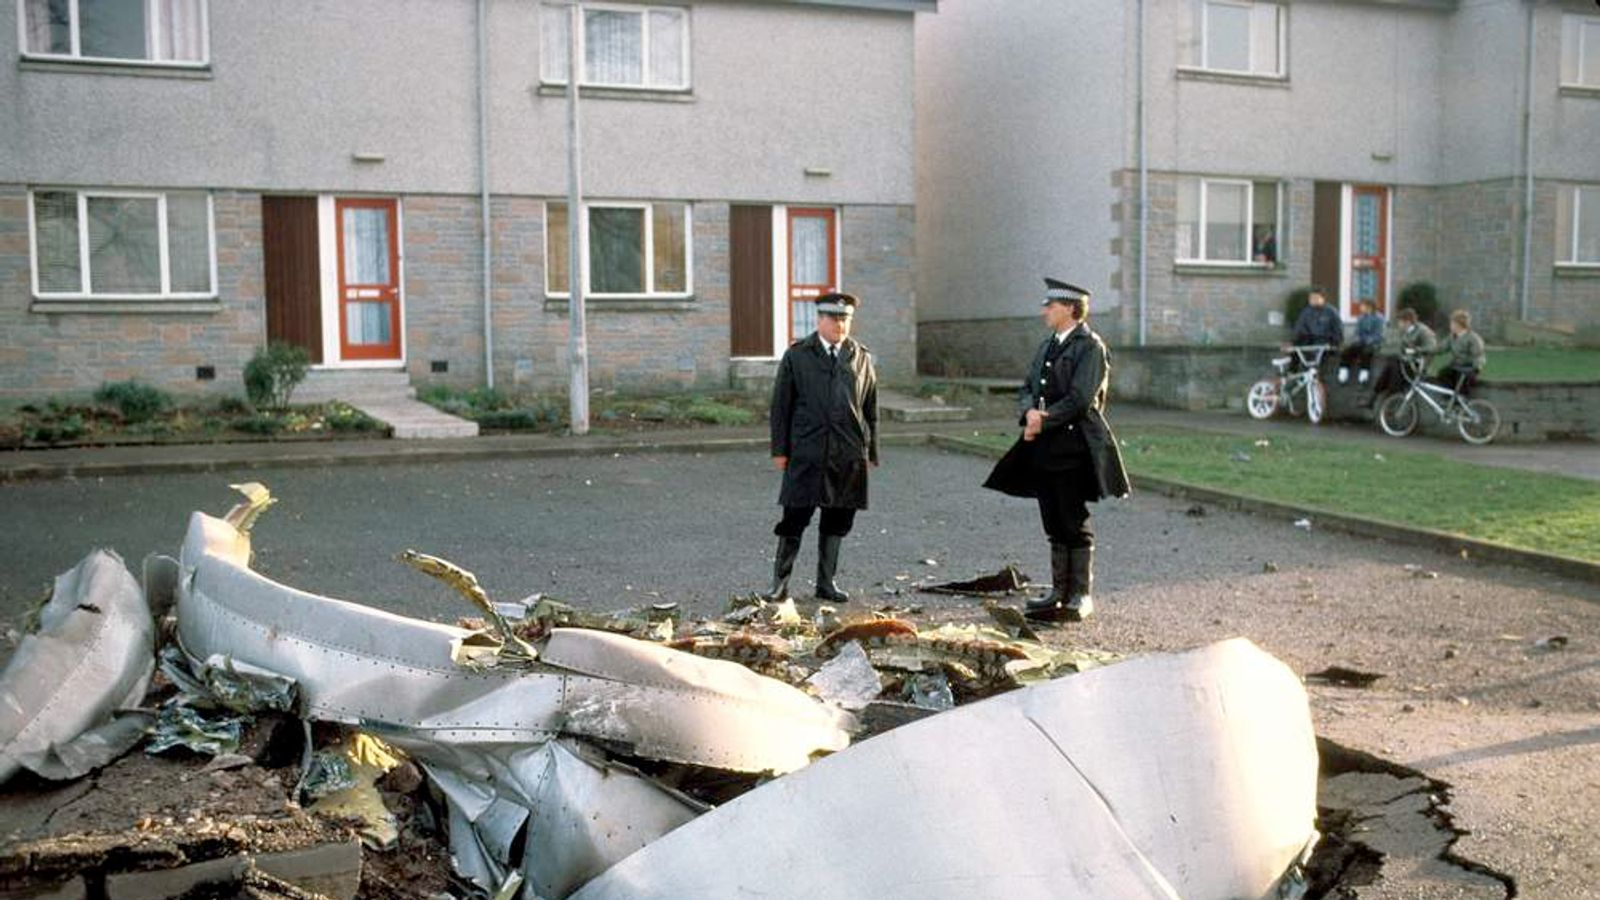 Police officers standing among debris in the Scottish town of Lockerbie after a Pan Am jumbo jet exploded mid-air and crashed in flames on to the market town